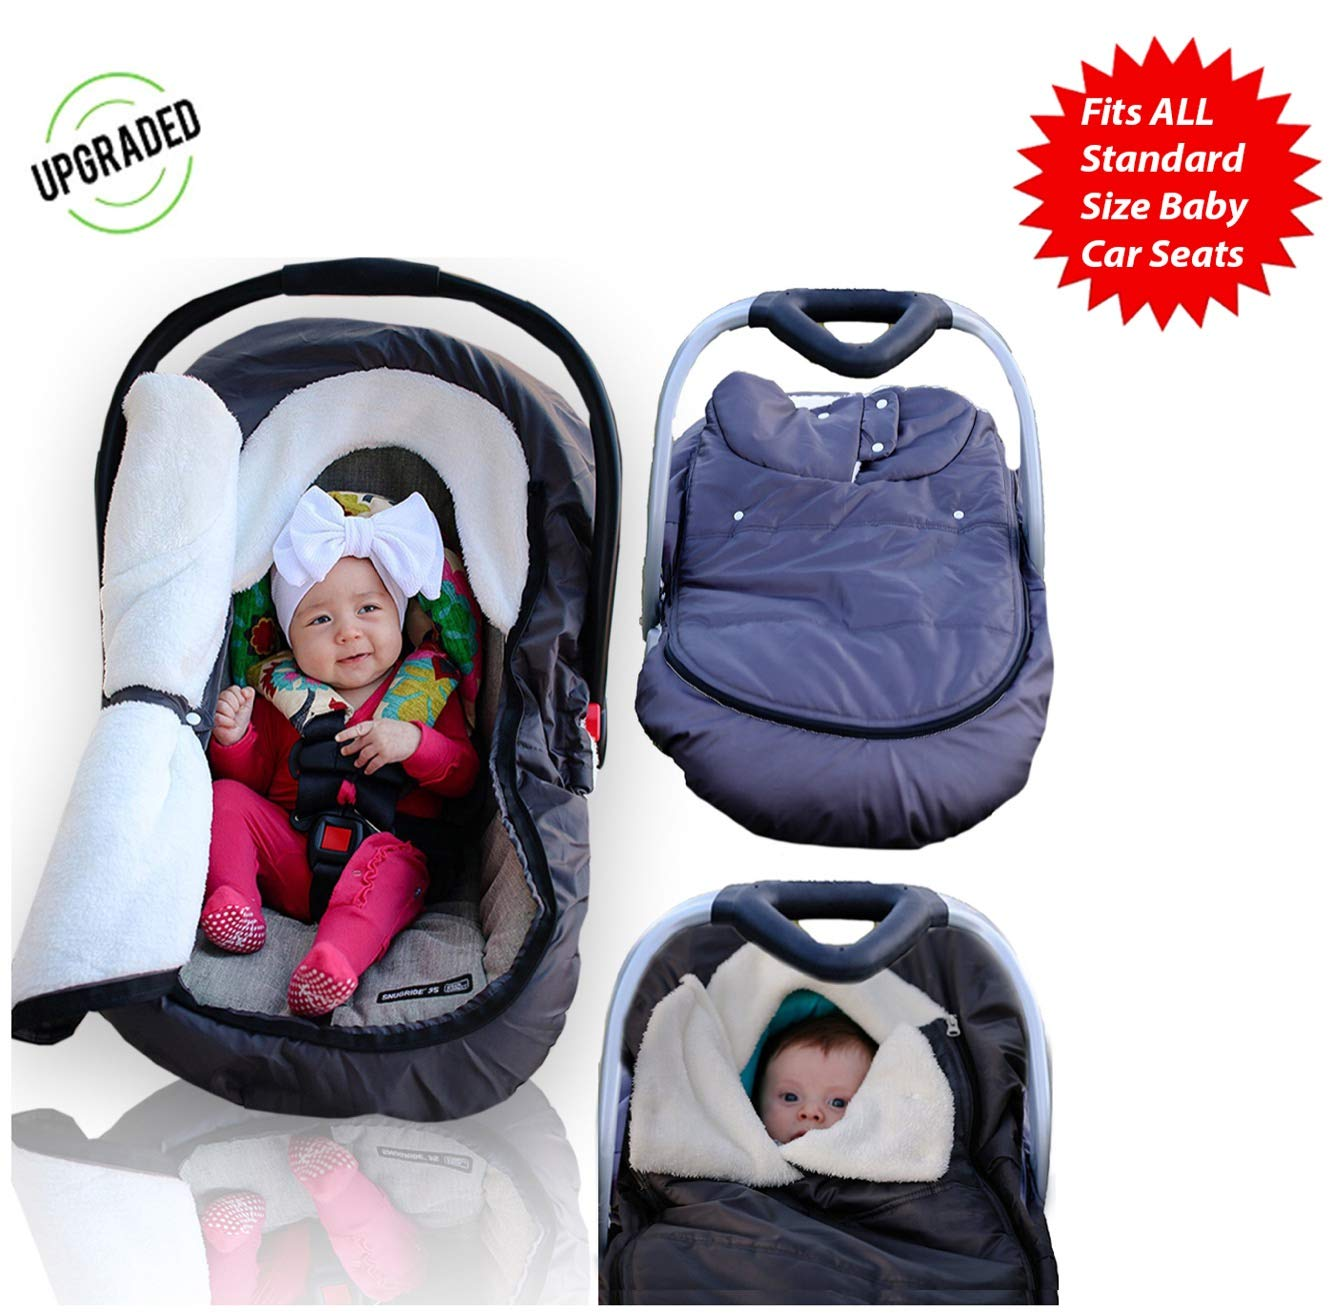 Strange Infant Baby Car Seat Cover Weatherproof Sneak A Peek Stroller Cover For Cold Winter Weather Amazingly Comfy Car Seat Cover With A Universal Fit Machost Co Dining Chair Design Ideas Machostcouk